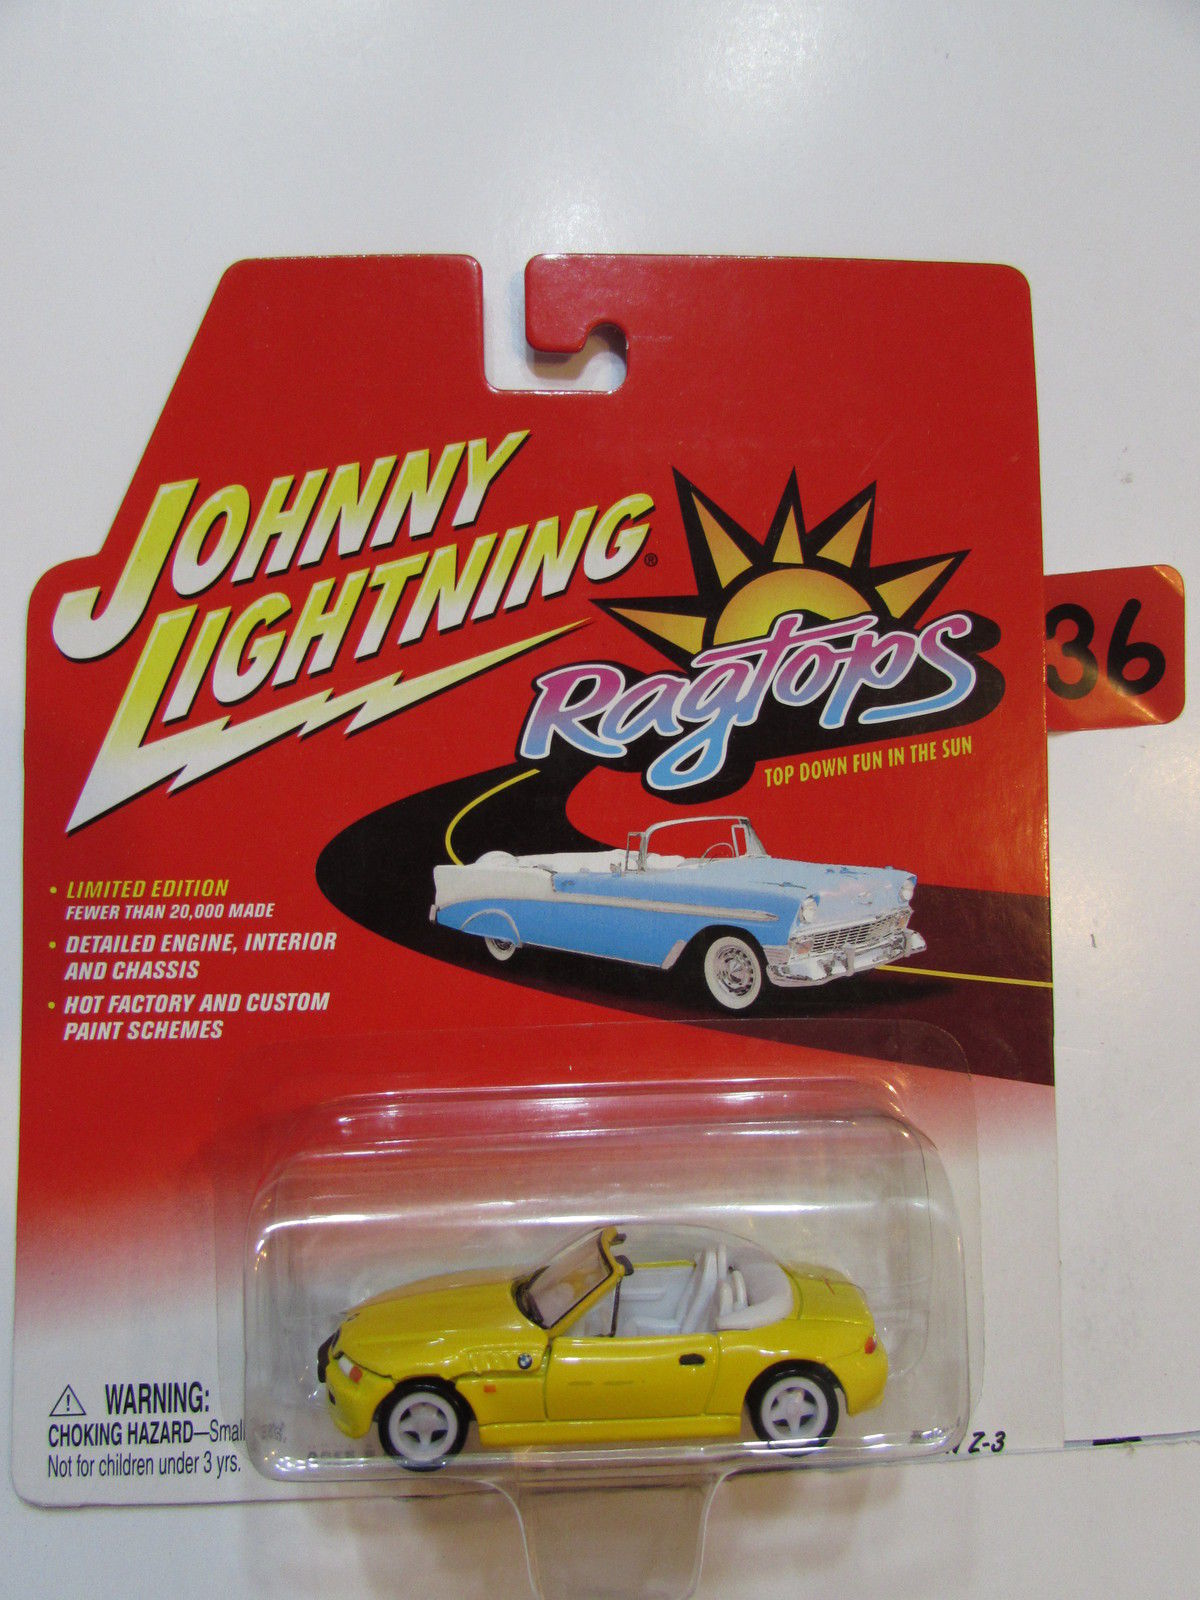 JOHNNY LIGHTNING 2002 RAGTOPS BMW Z - 3 WHITE LIGHTNING